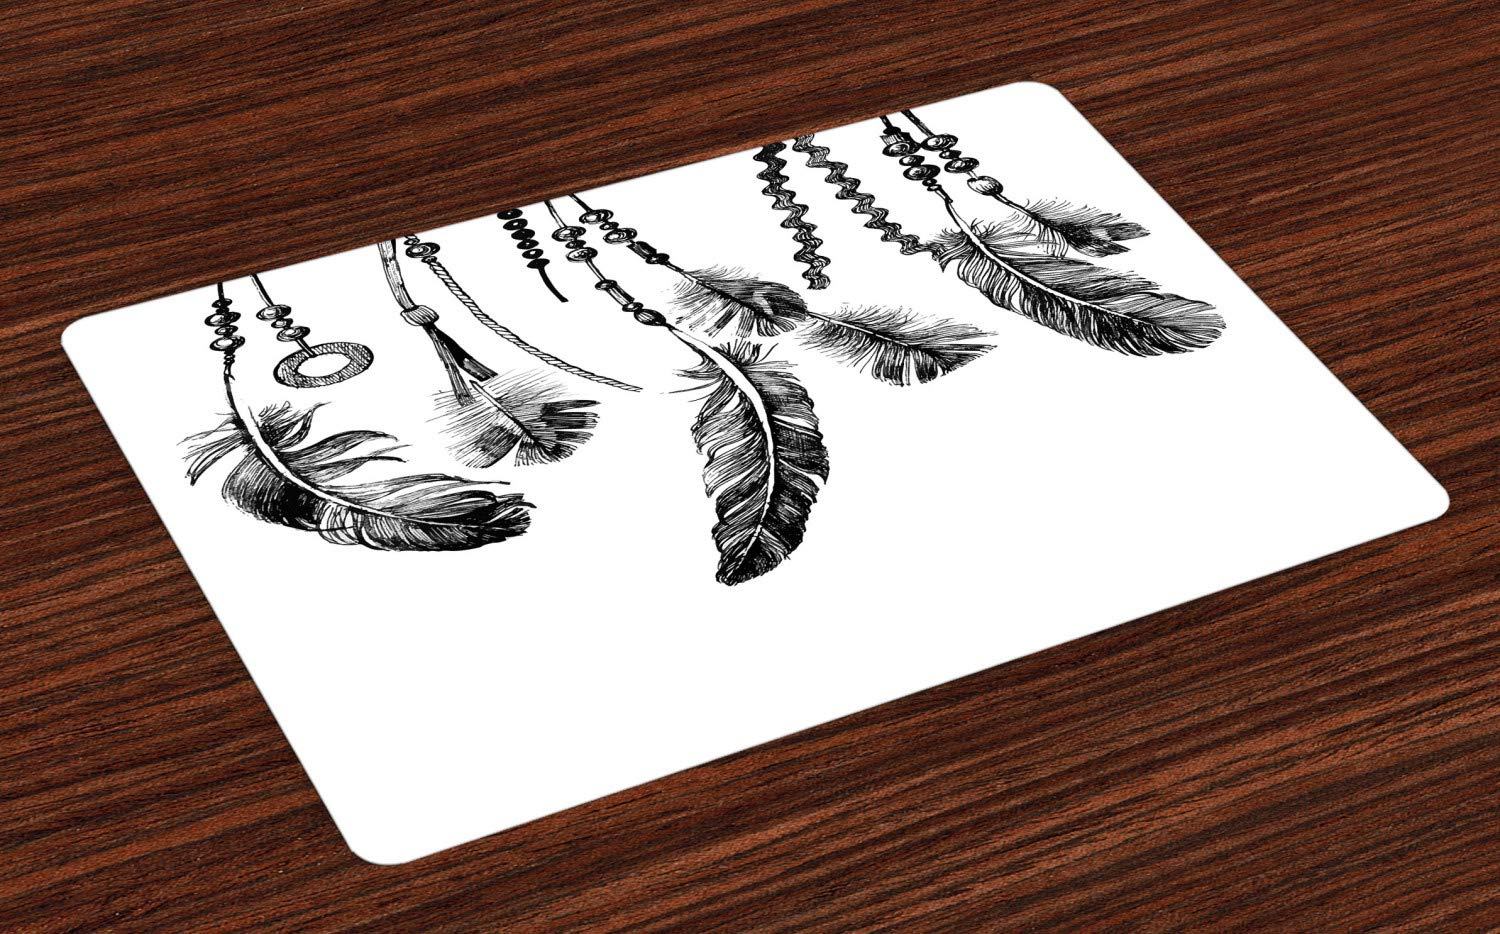 Ambesonne Native American Place Mats Set of 4, Native American Tribal Feathers Ancient Icon for Wisdom and Strength, Washable Fabric Placemats for Dining Room Kitchen Table Decor, White and Black